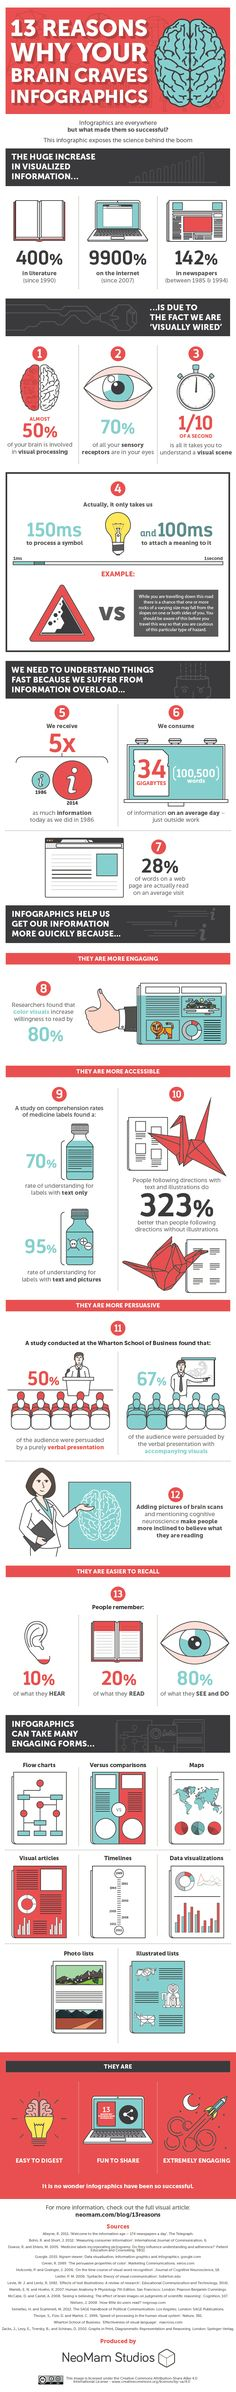 Infographic: 13 Reasons Why Your Brain Craves Infographics | Adweek